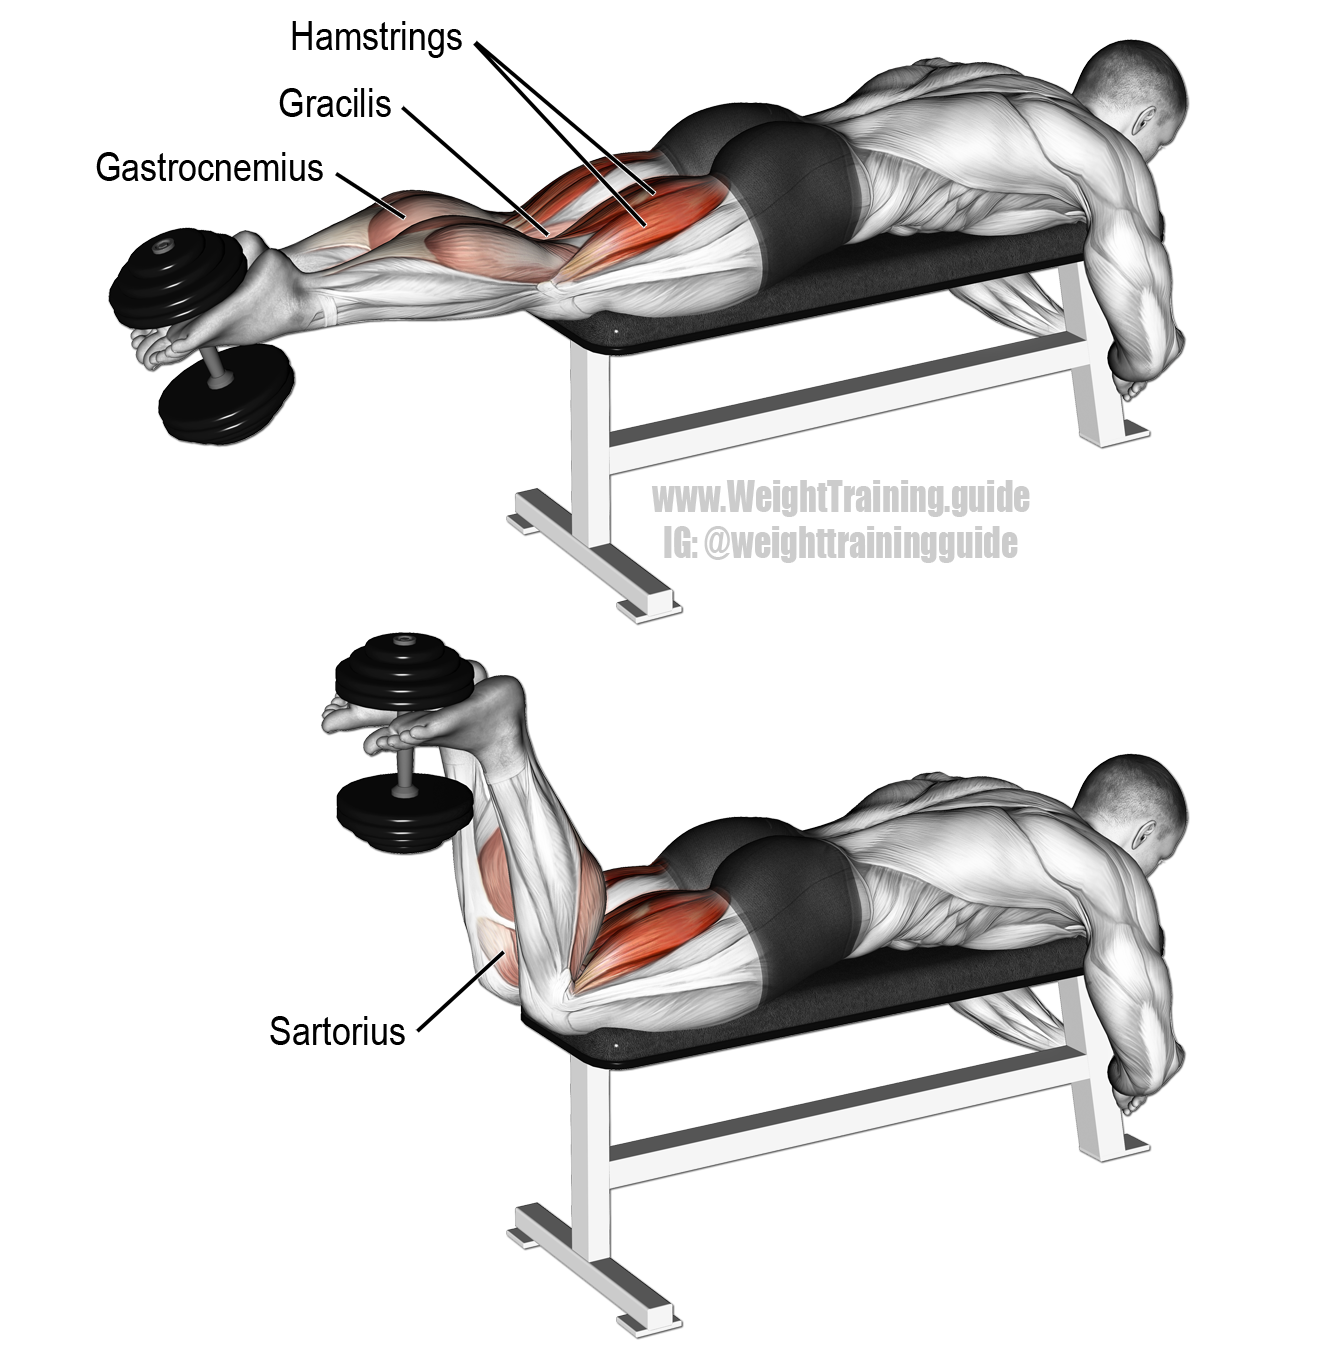 Forum on this topic: How to Execute a Leg Curl, how-to-execute-a-leg-curl/